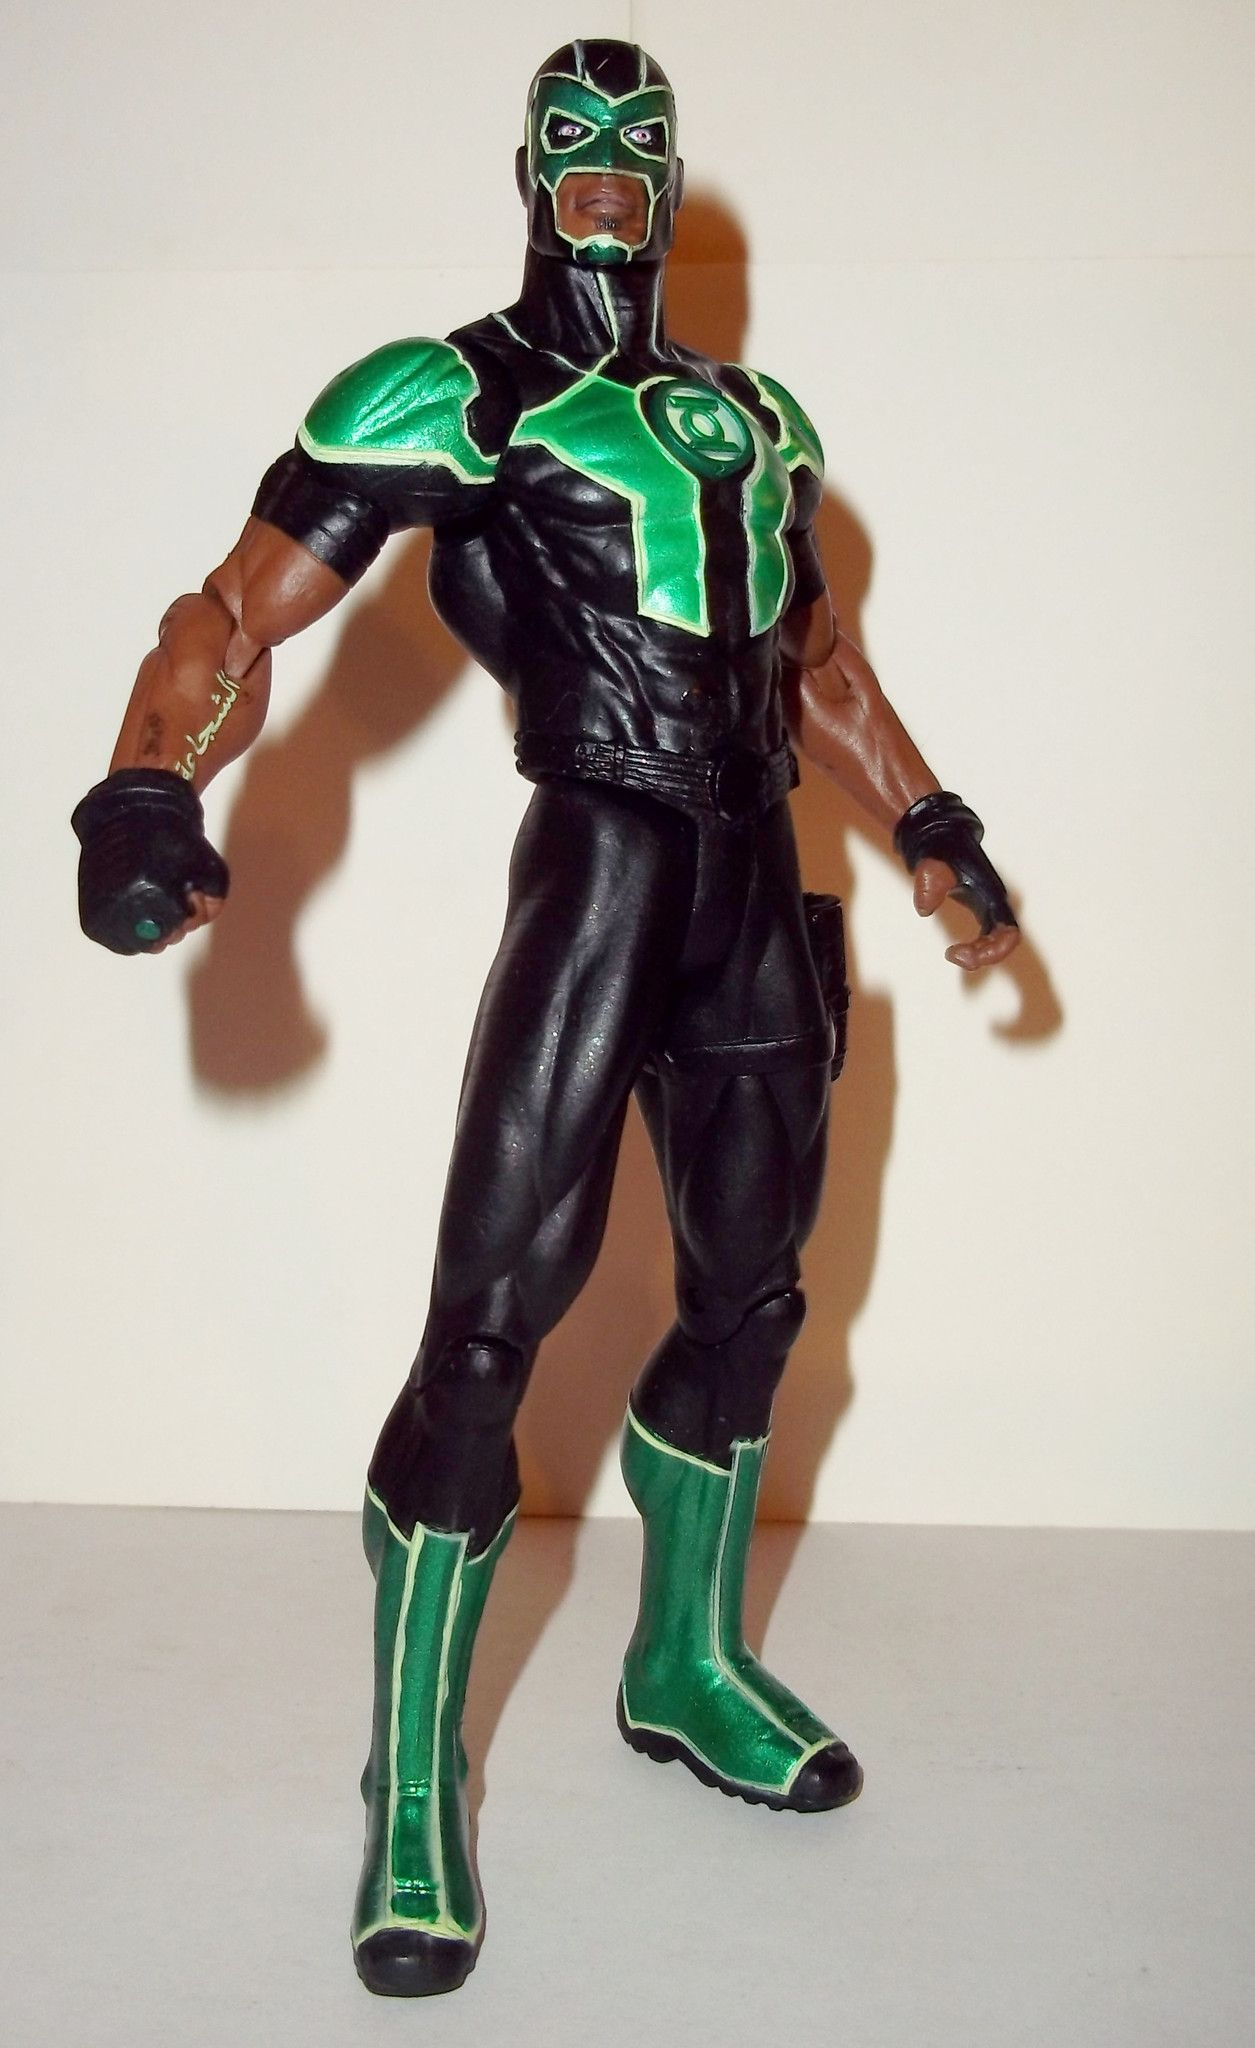 DC Comics The New 52 Green Lantern Simon Baz Action Figure